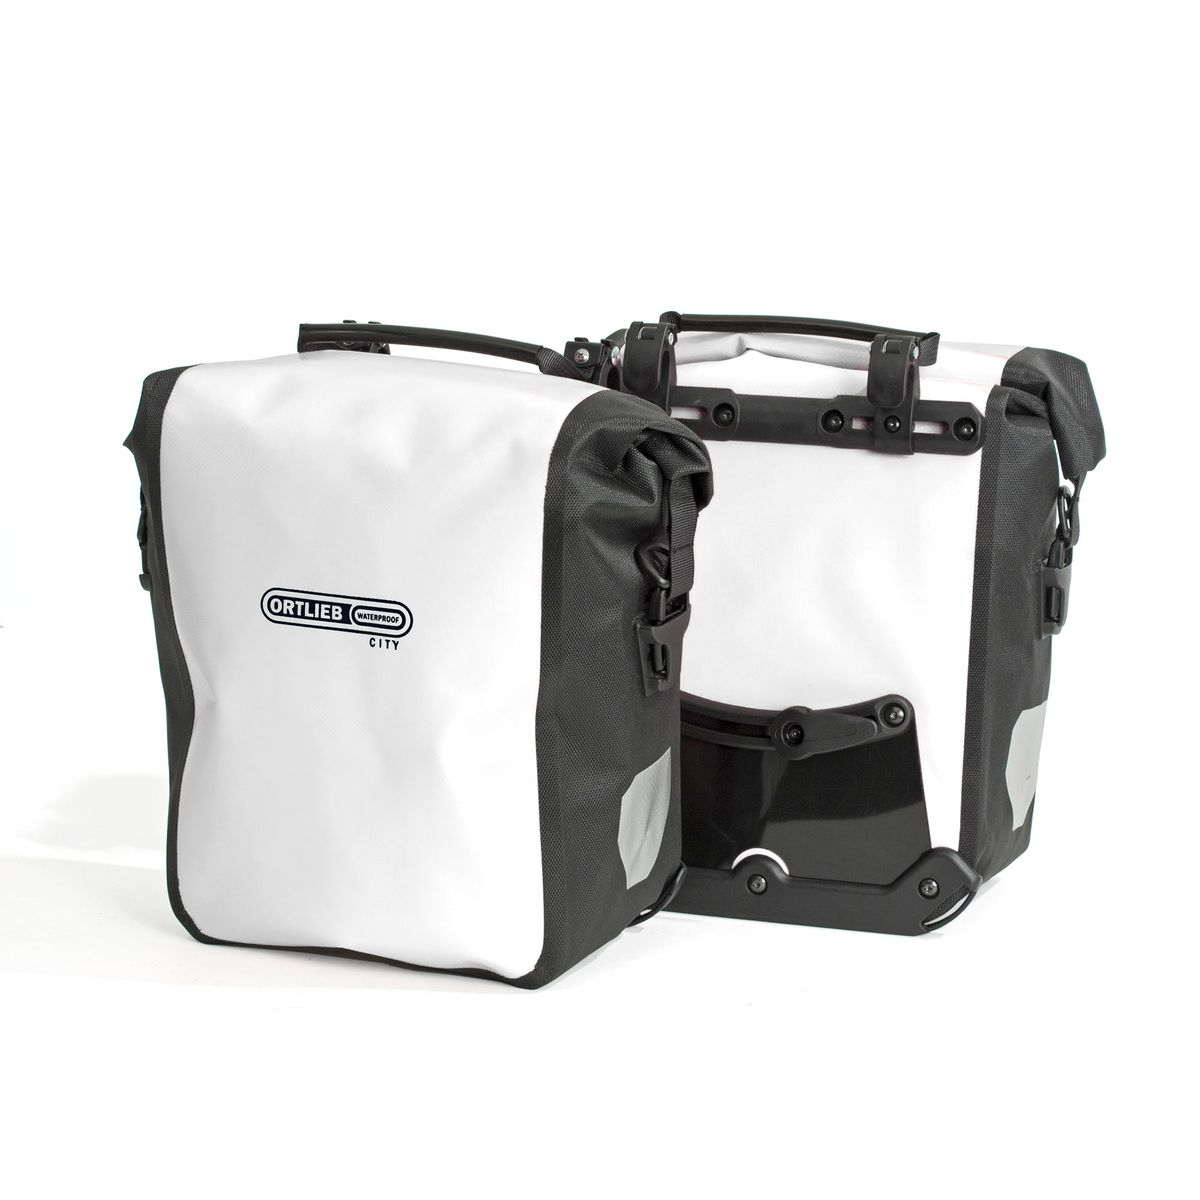 SPORT-ROLLER City set of two pannier bags